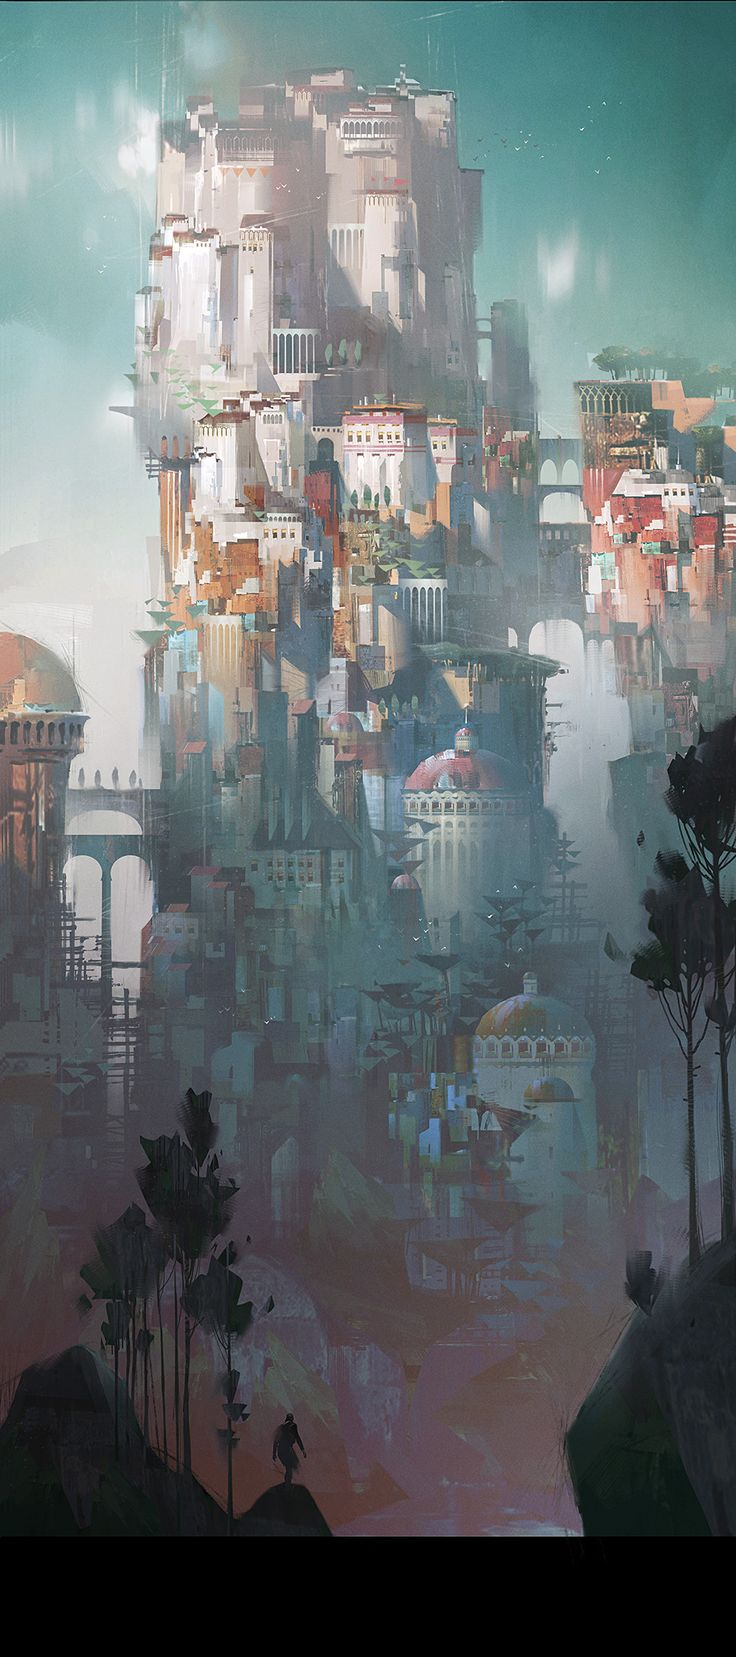 ArtStation - Lost kingdom, Ivan Laliashvili